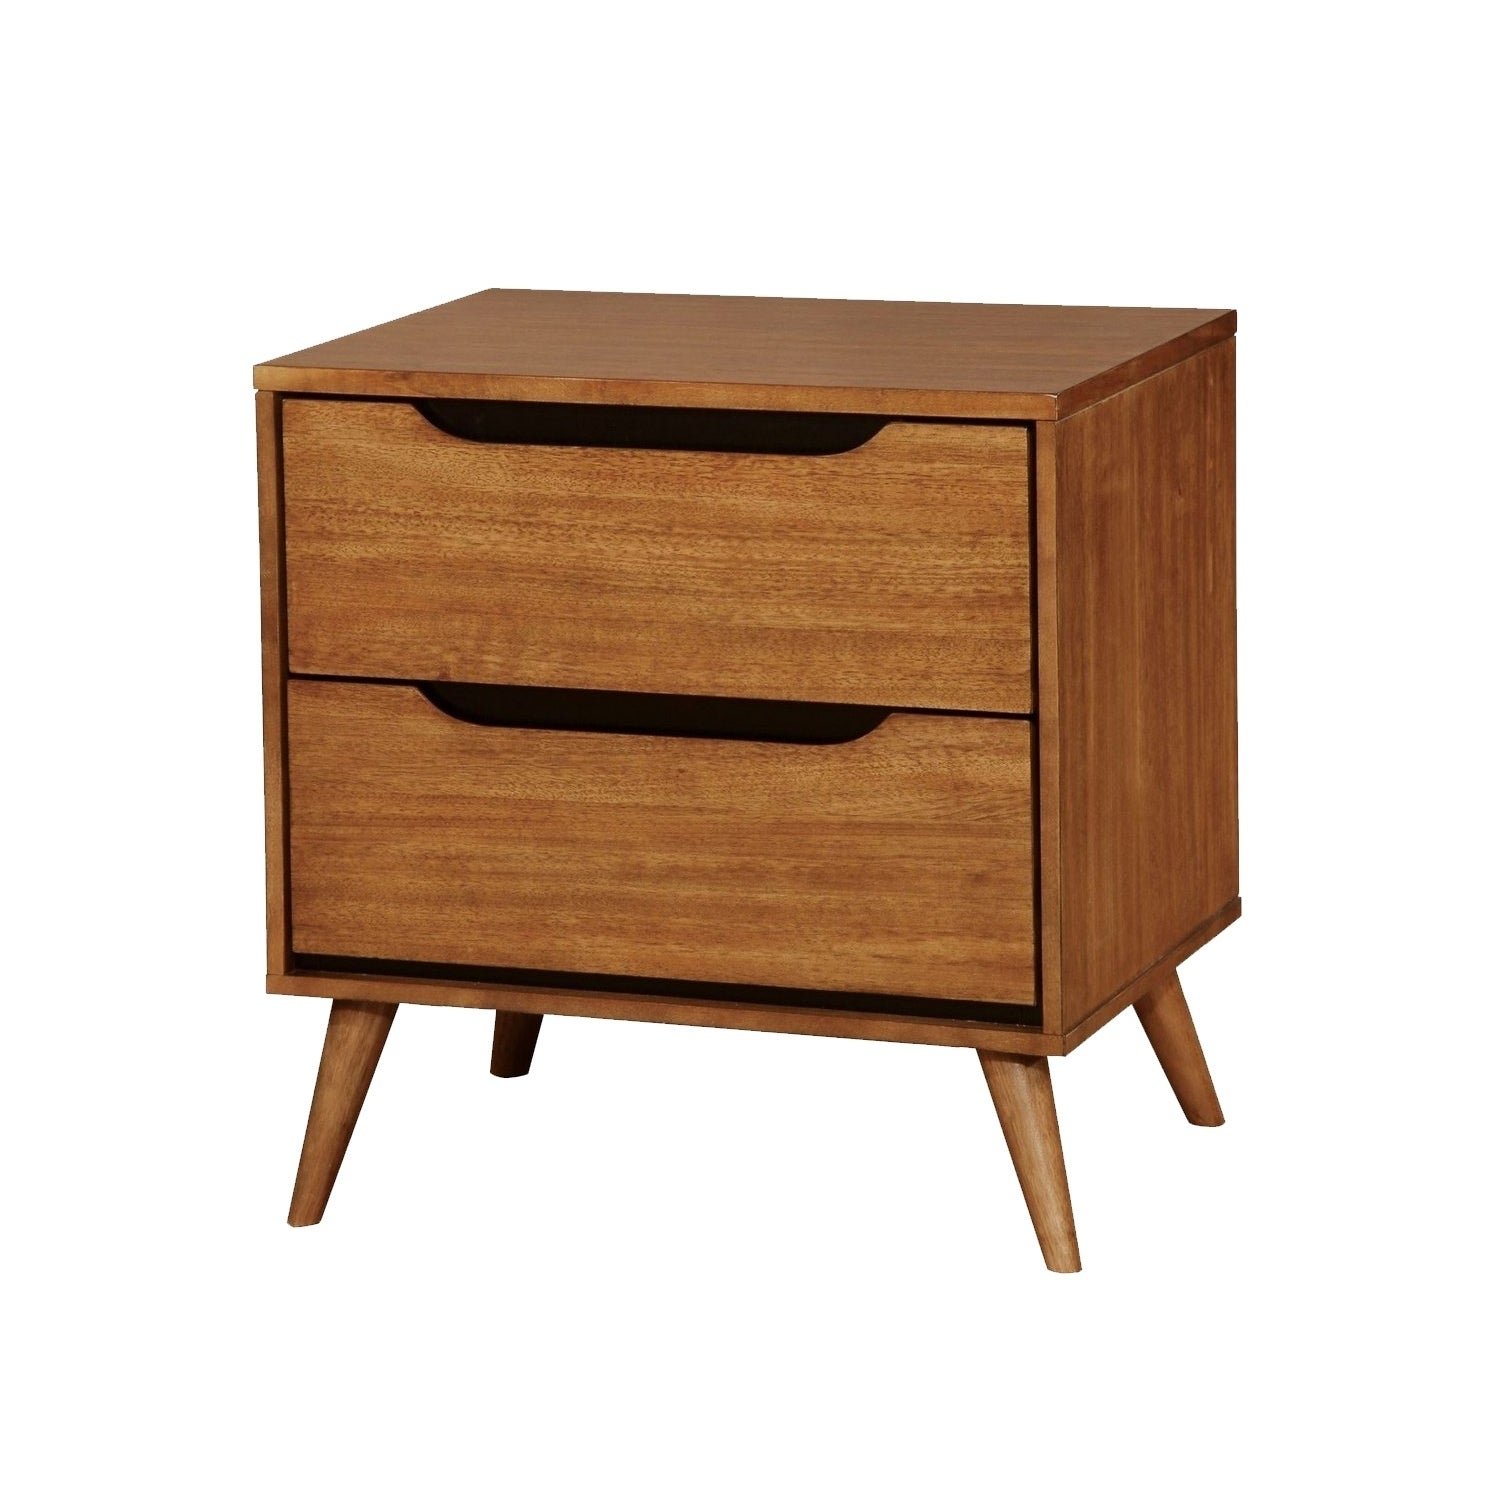 Lennart Mid Century Modern Nightstand Light Oak Free Shipping Today 21419187